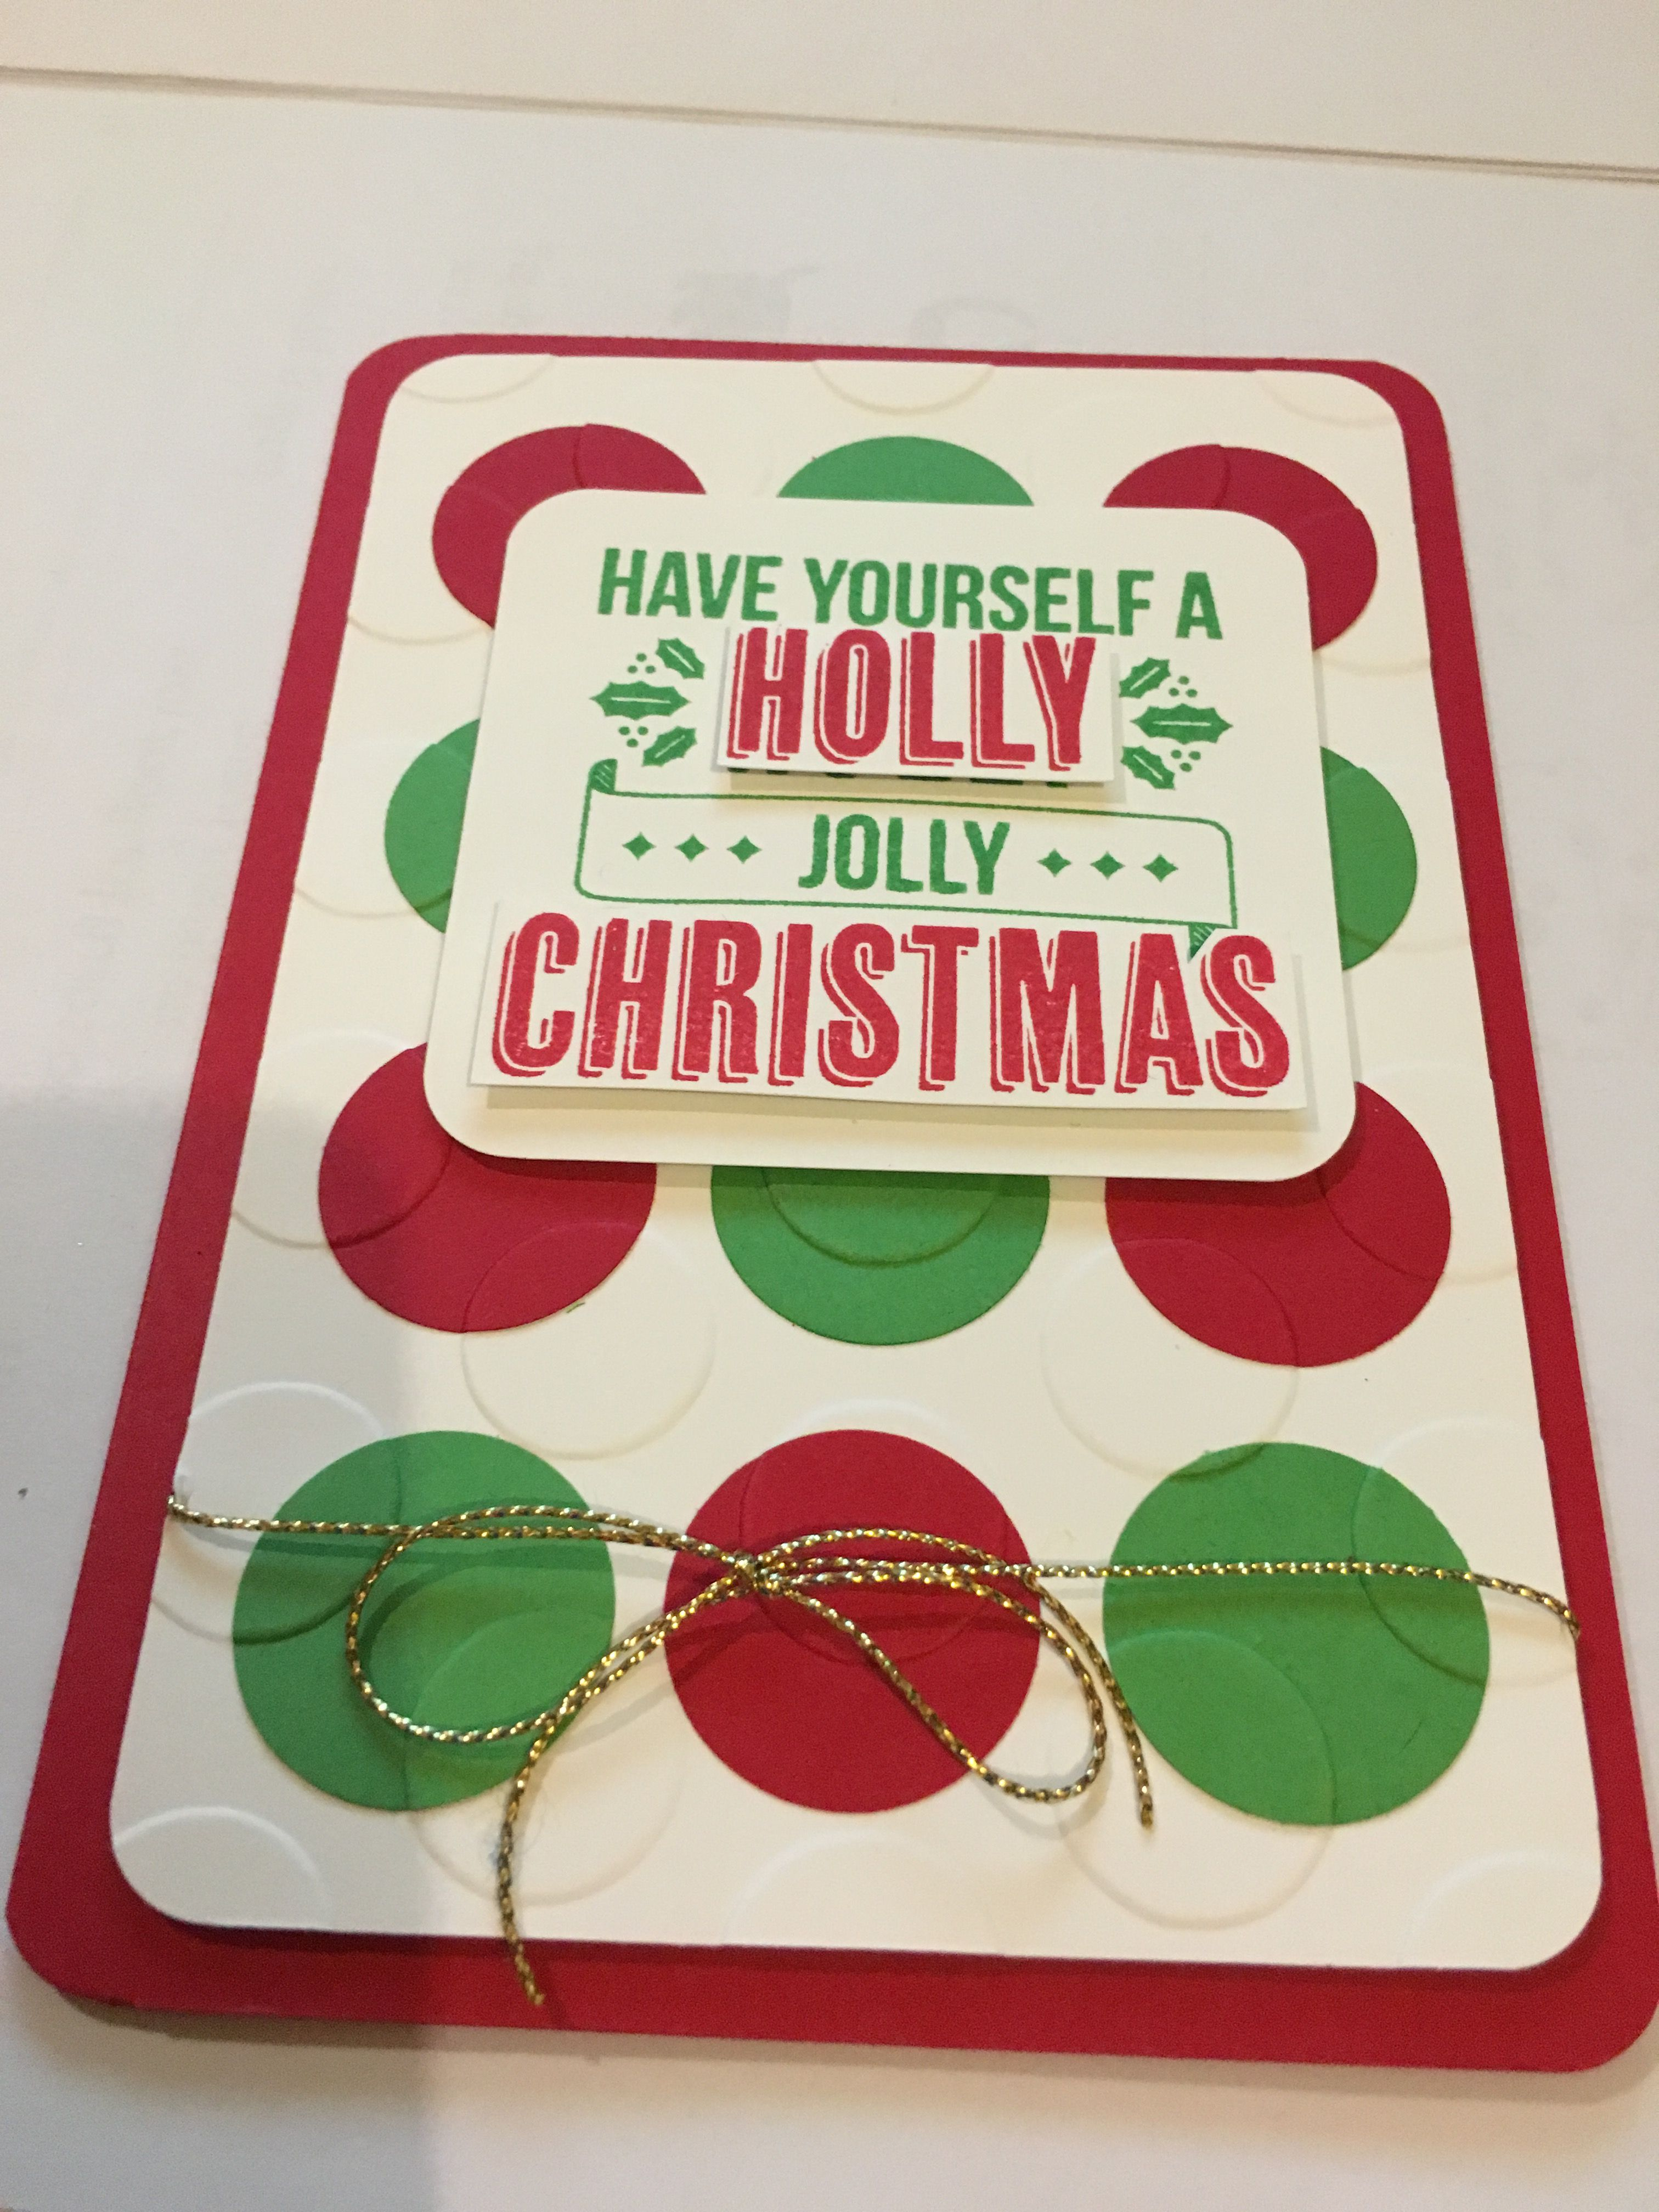 Stampin Up Christmas -  Jolly Christmas Stamp. Circles punched, stuck then put through Large Polka Dot embossing folder